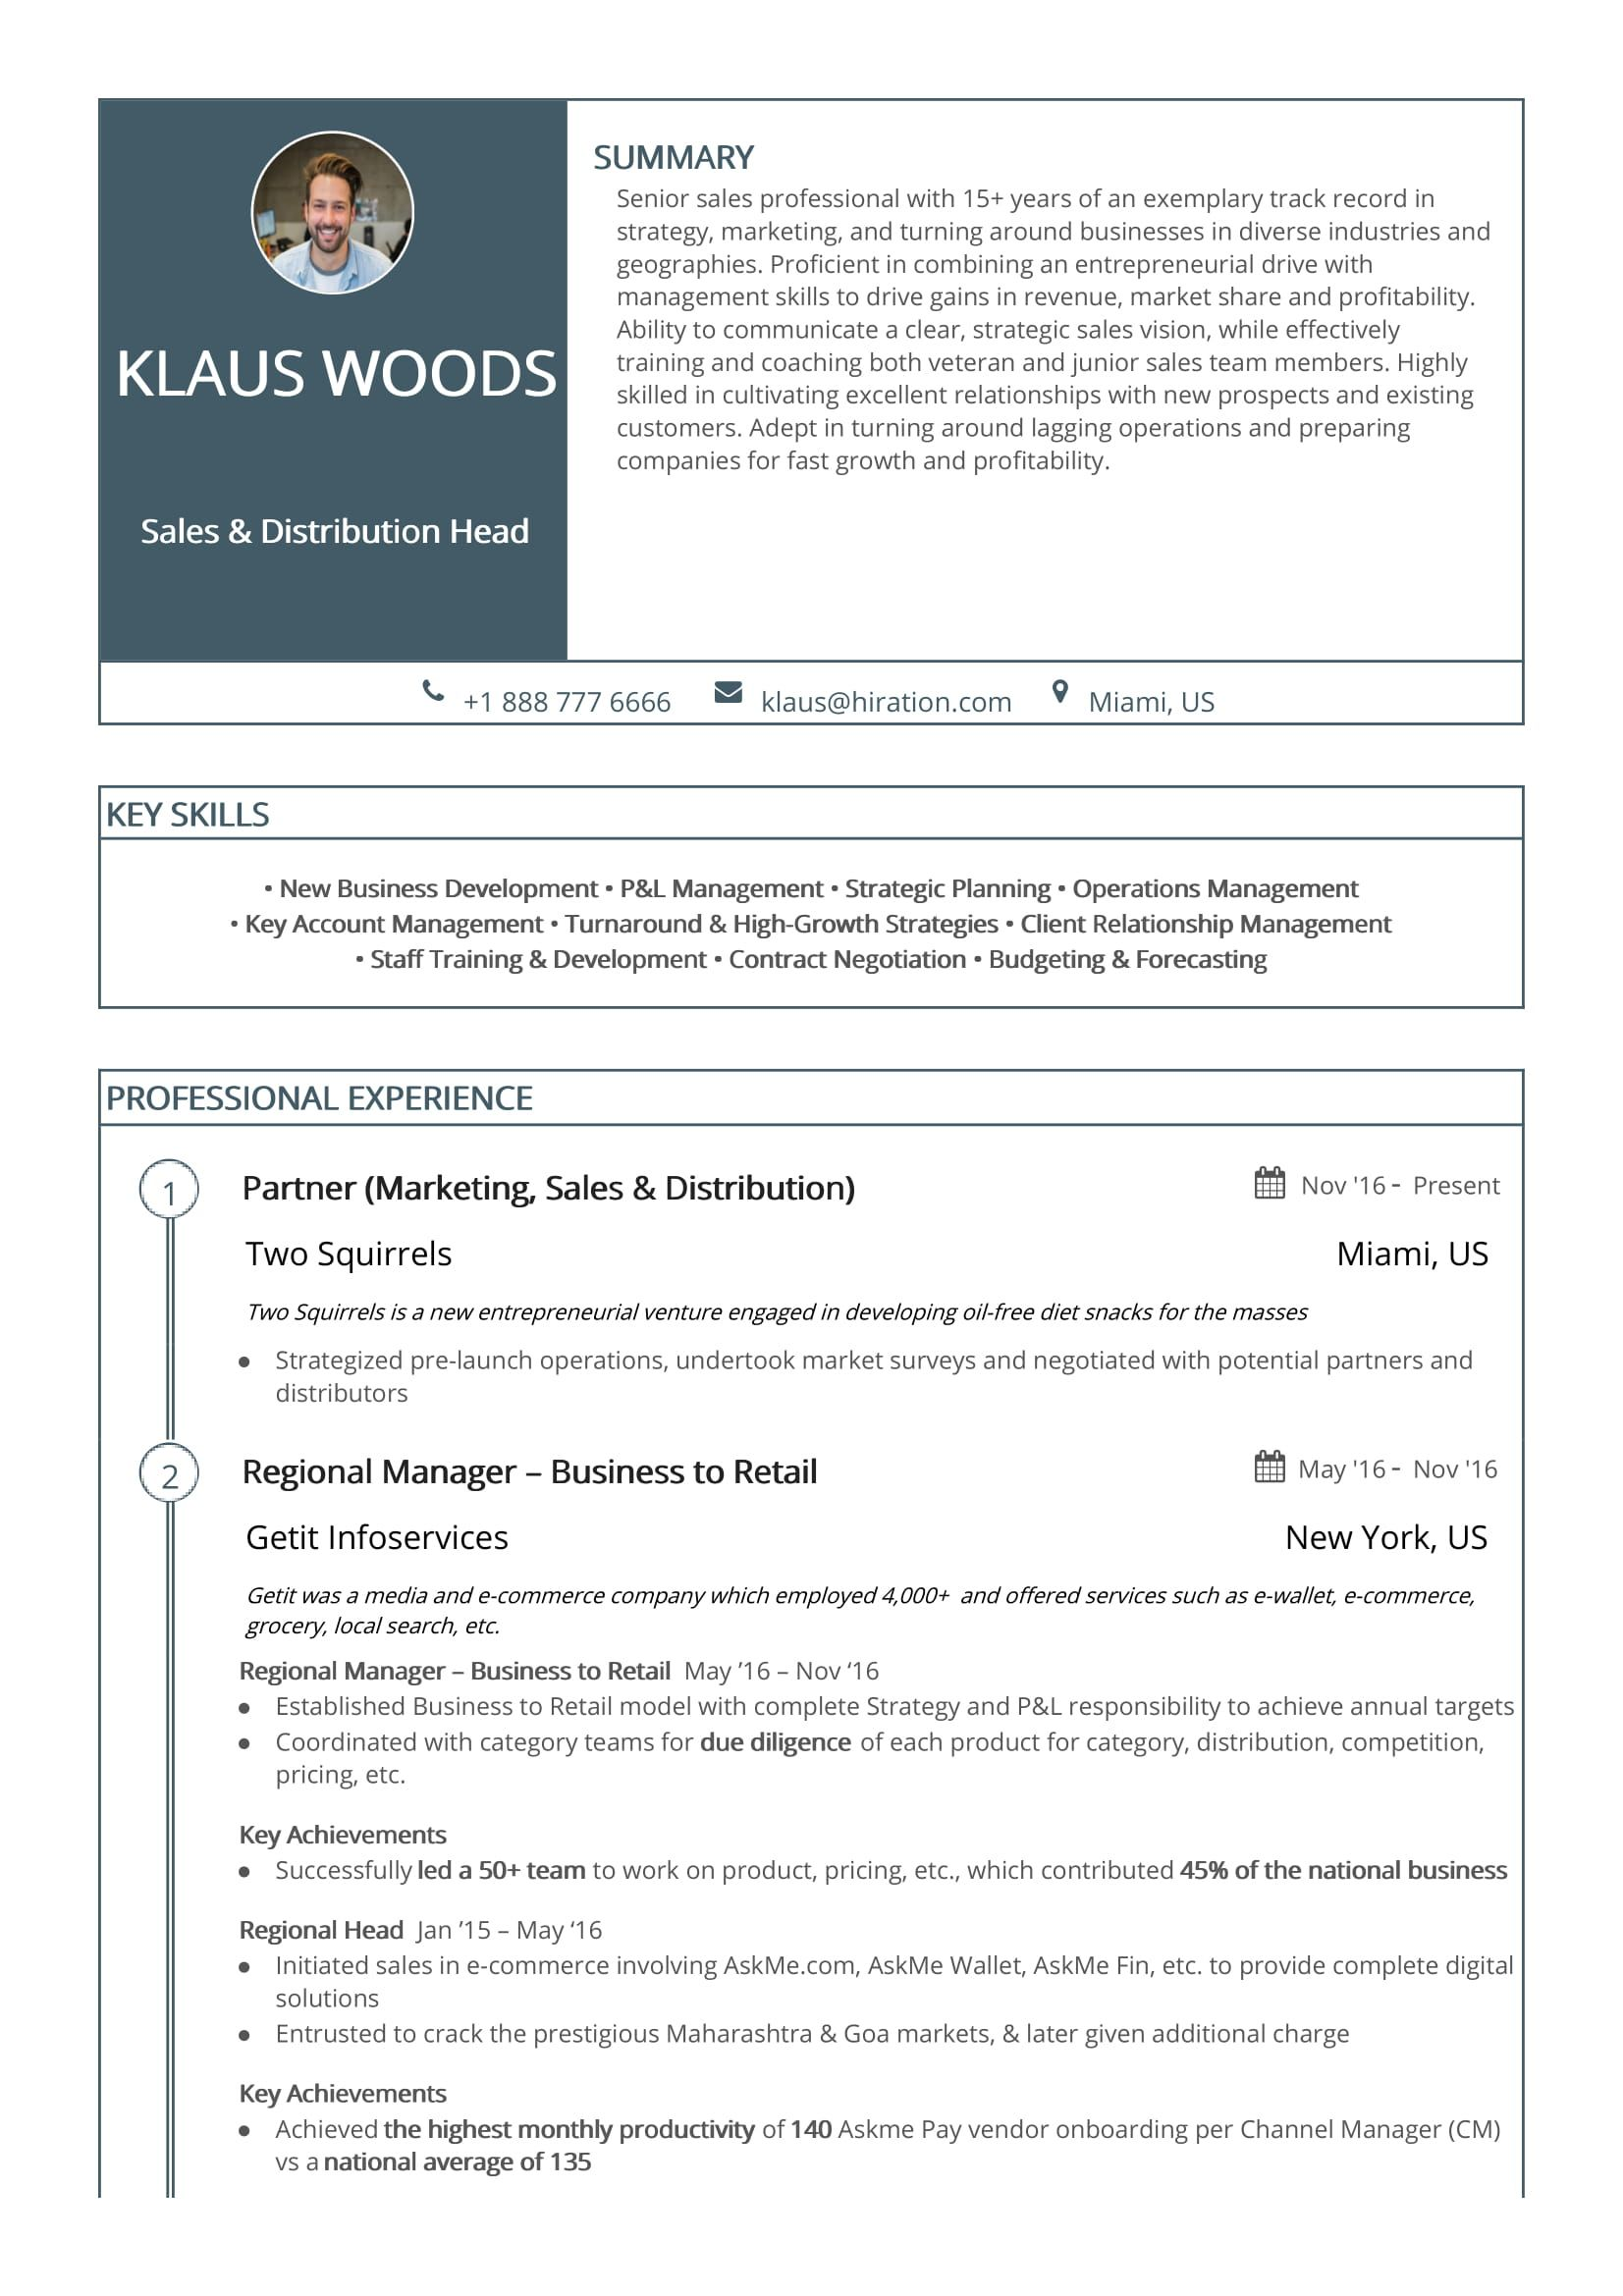 KLAUS_WOODS_Sales_Head_New_York-1